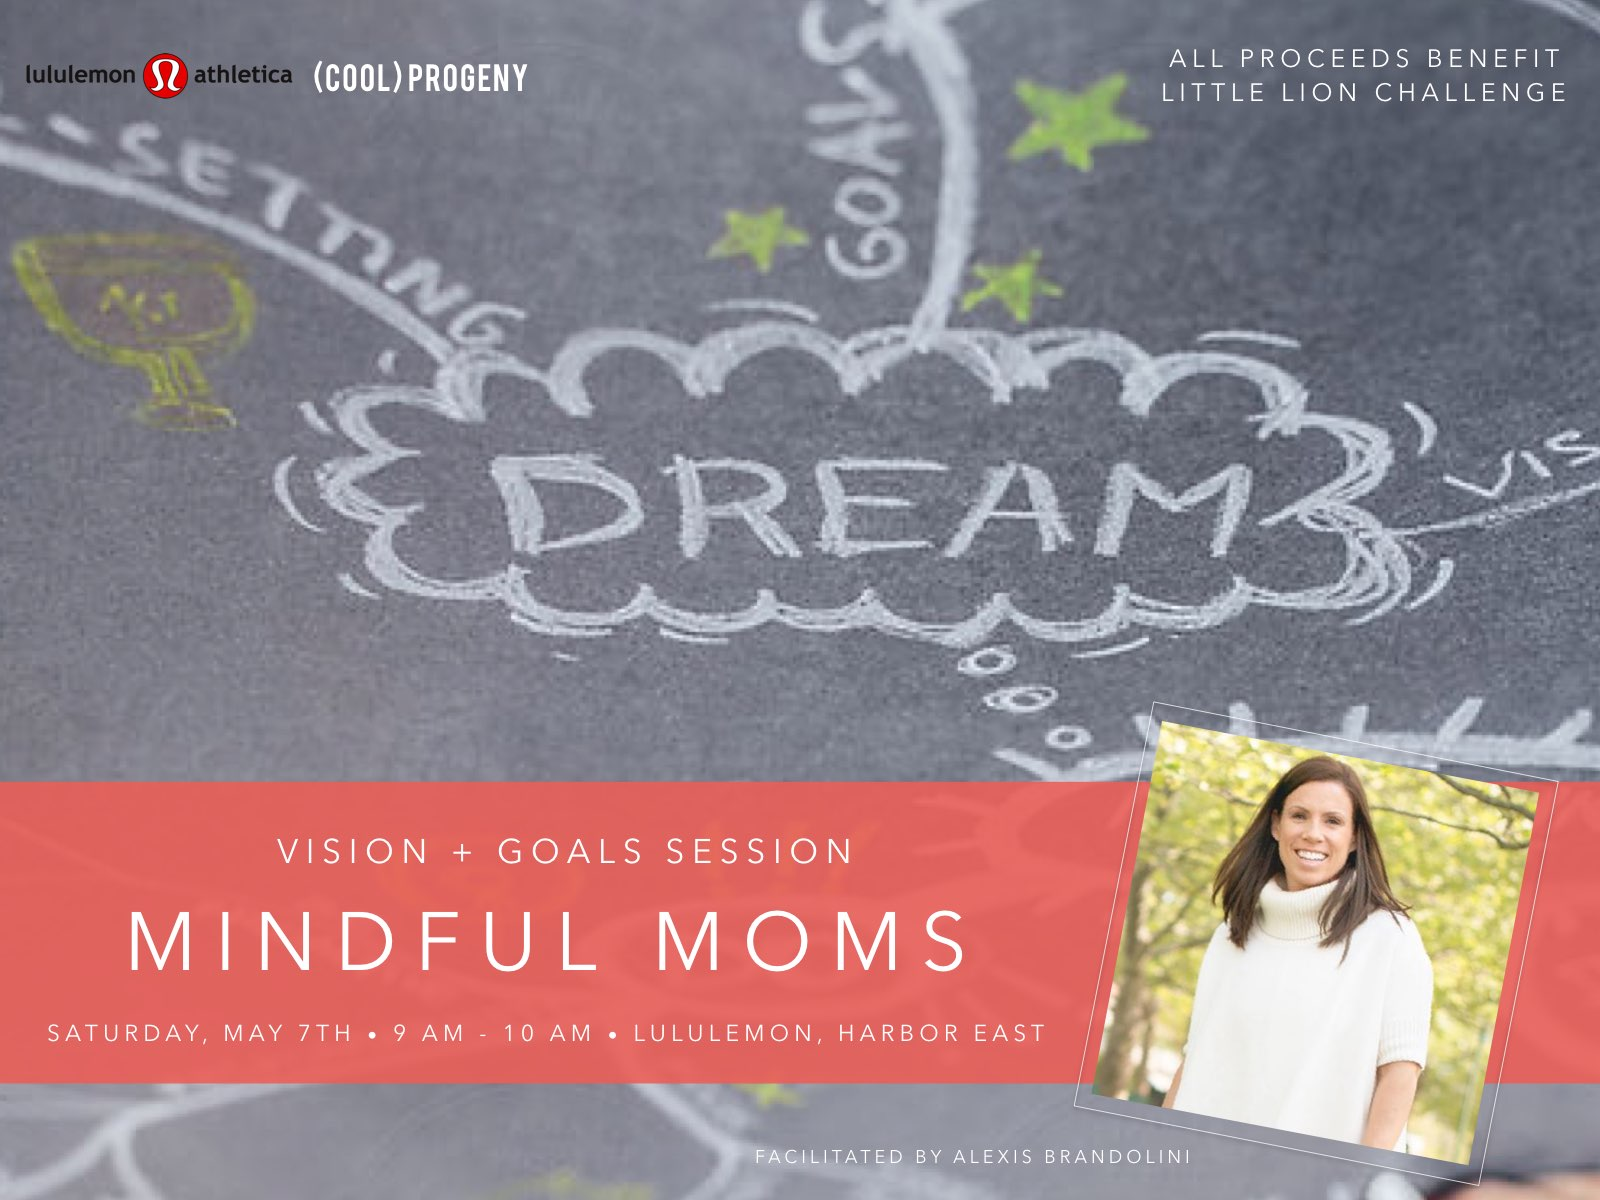 Vision and Goals: Mindful Moms - (cool) progeny